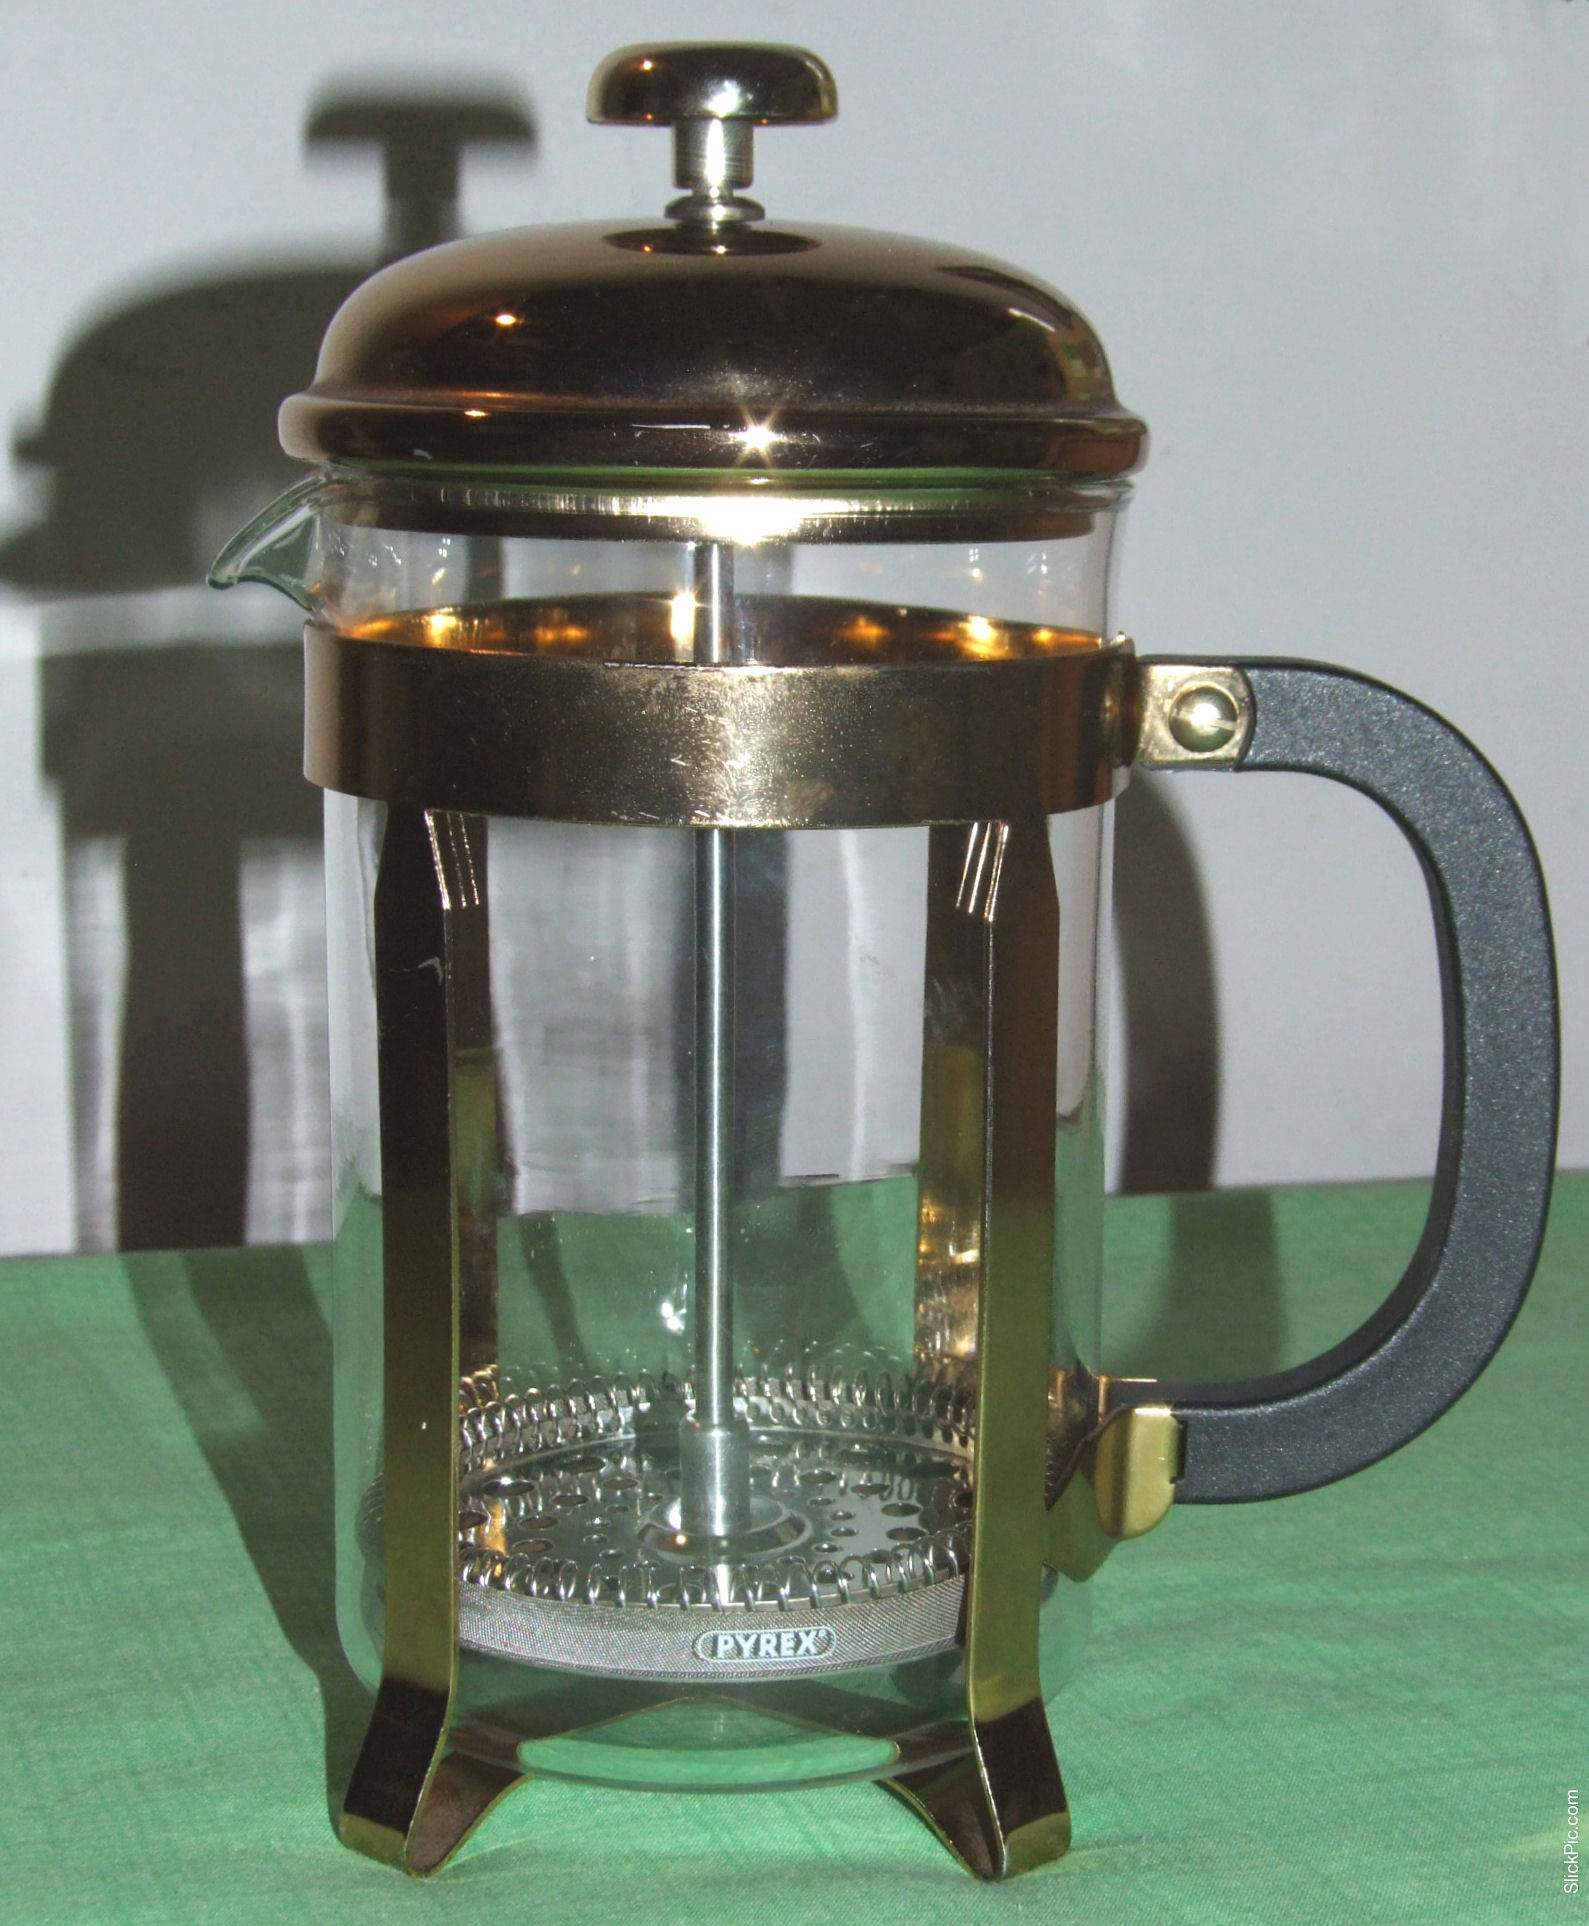 Gold French Press Coffee Maker : Quality Pyrex Gold Coloured Cafetiere / French Press / Coffee Maker / Filter eBay